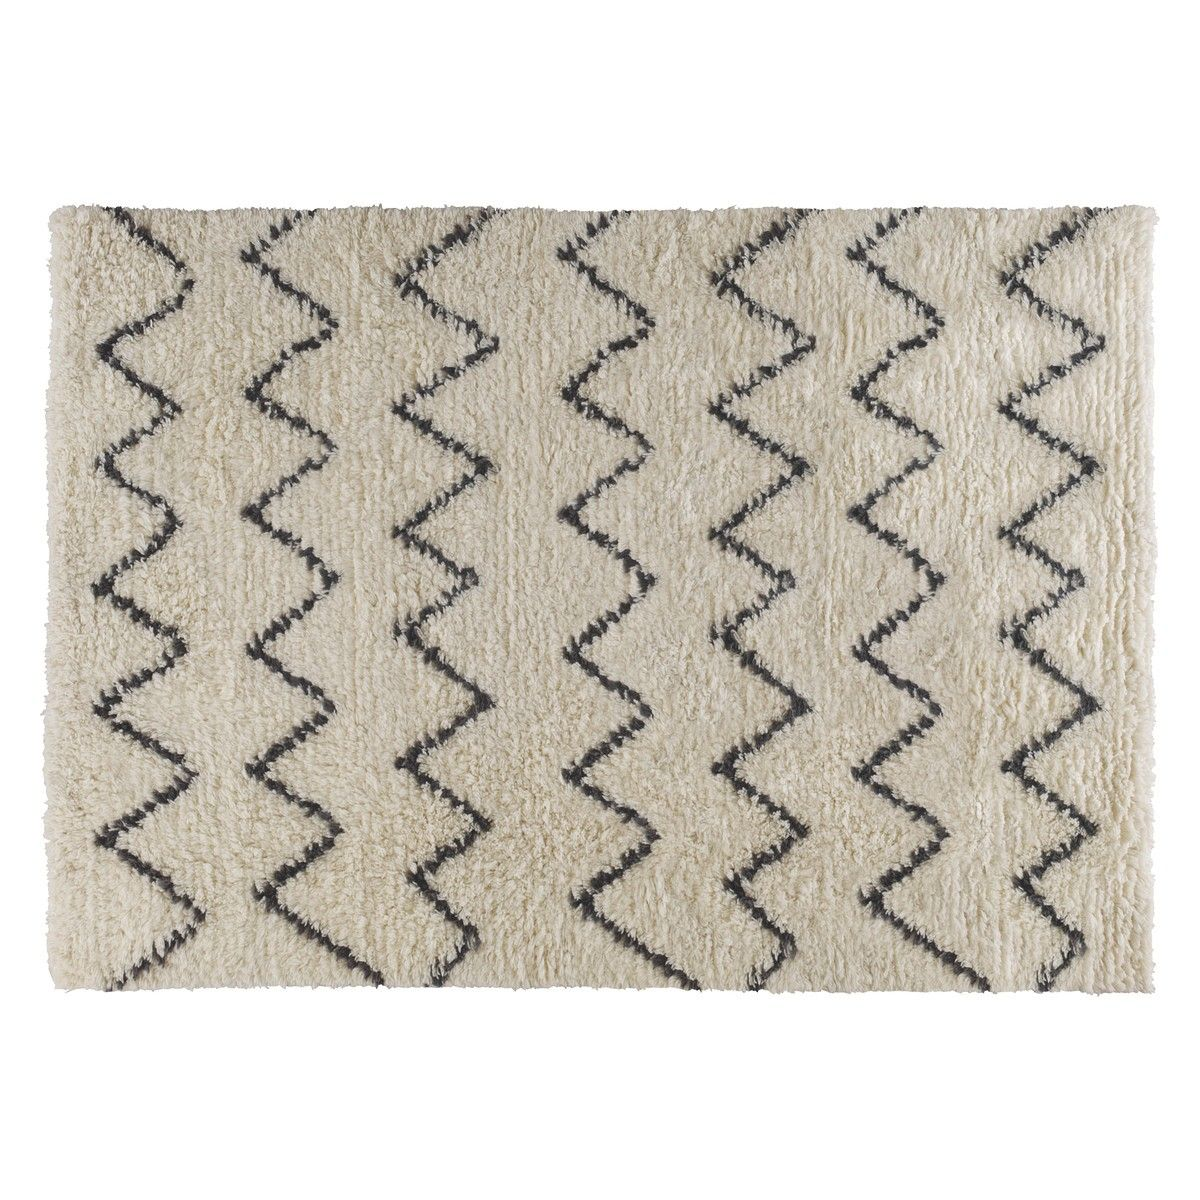 Flokati Large Cream And Black Zig Zag Rug 170 X 240cm Now At Habitat Uk